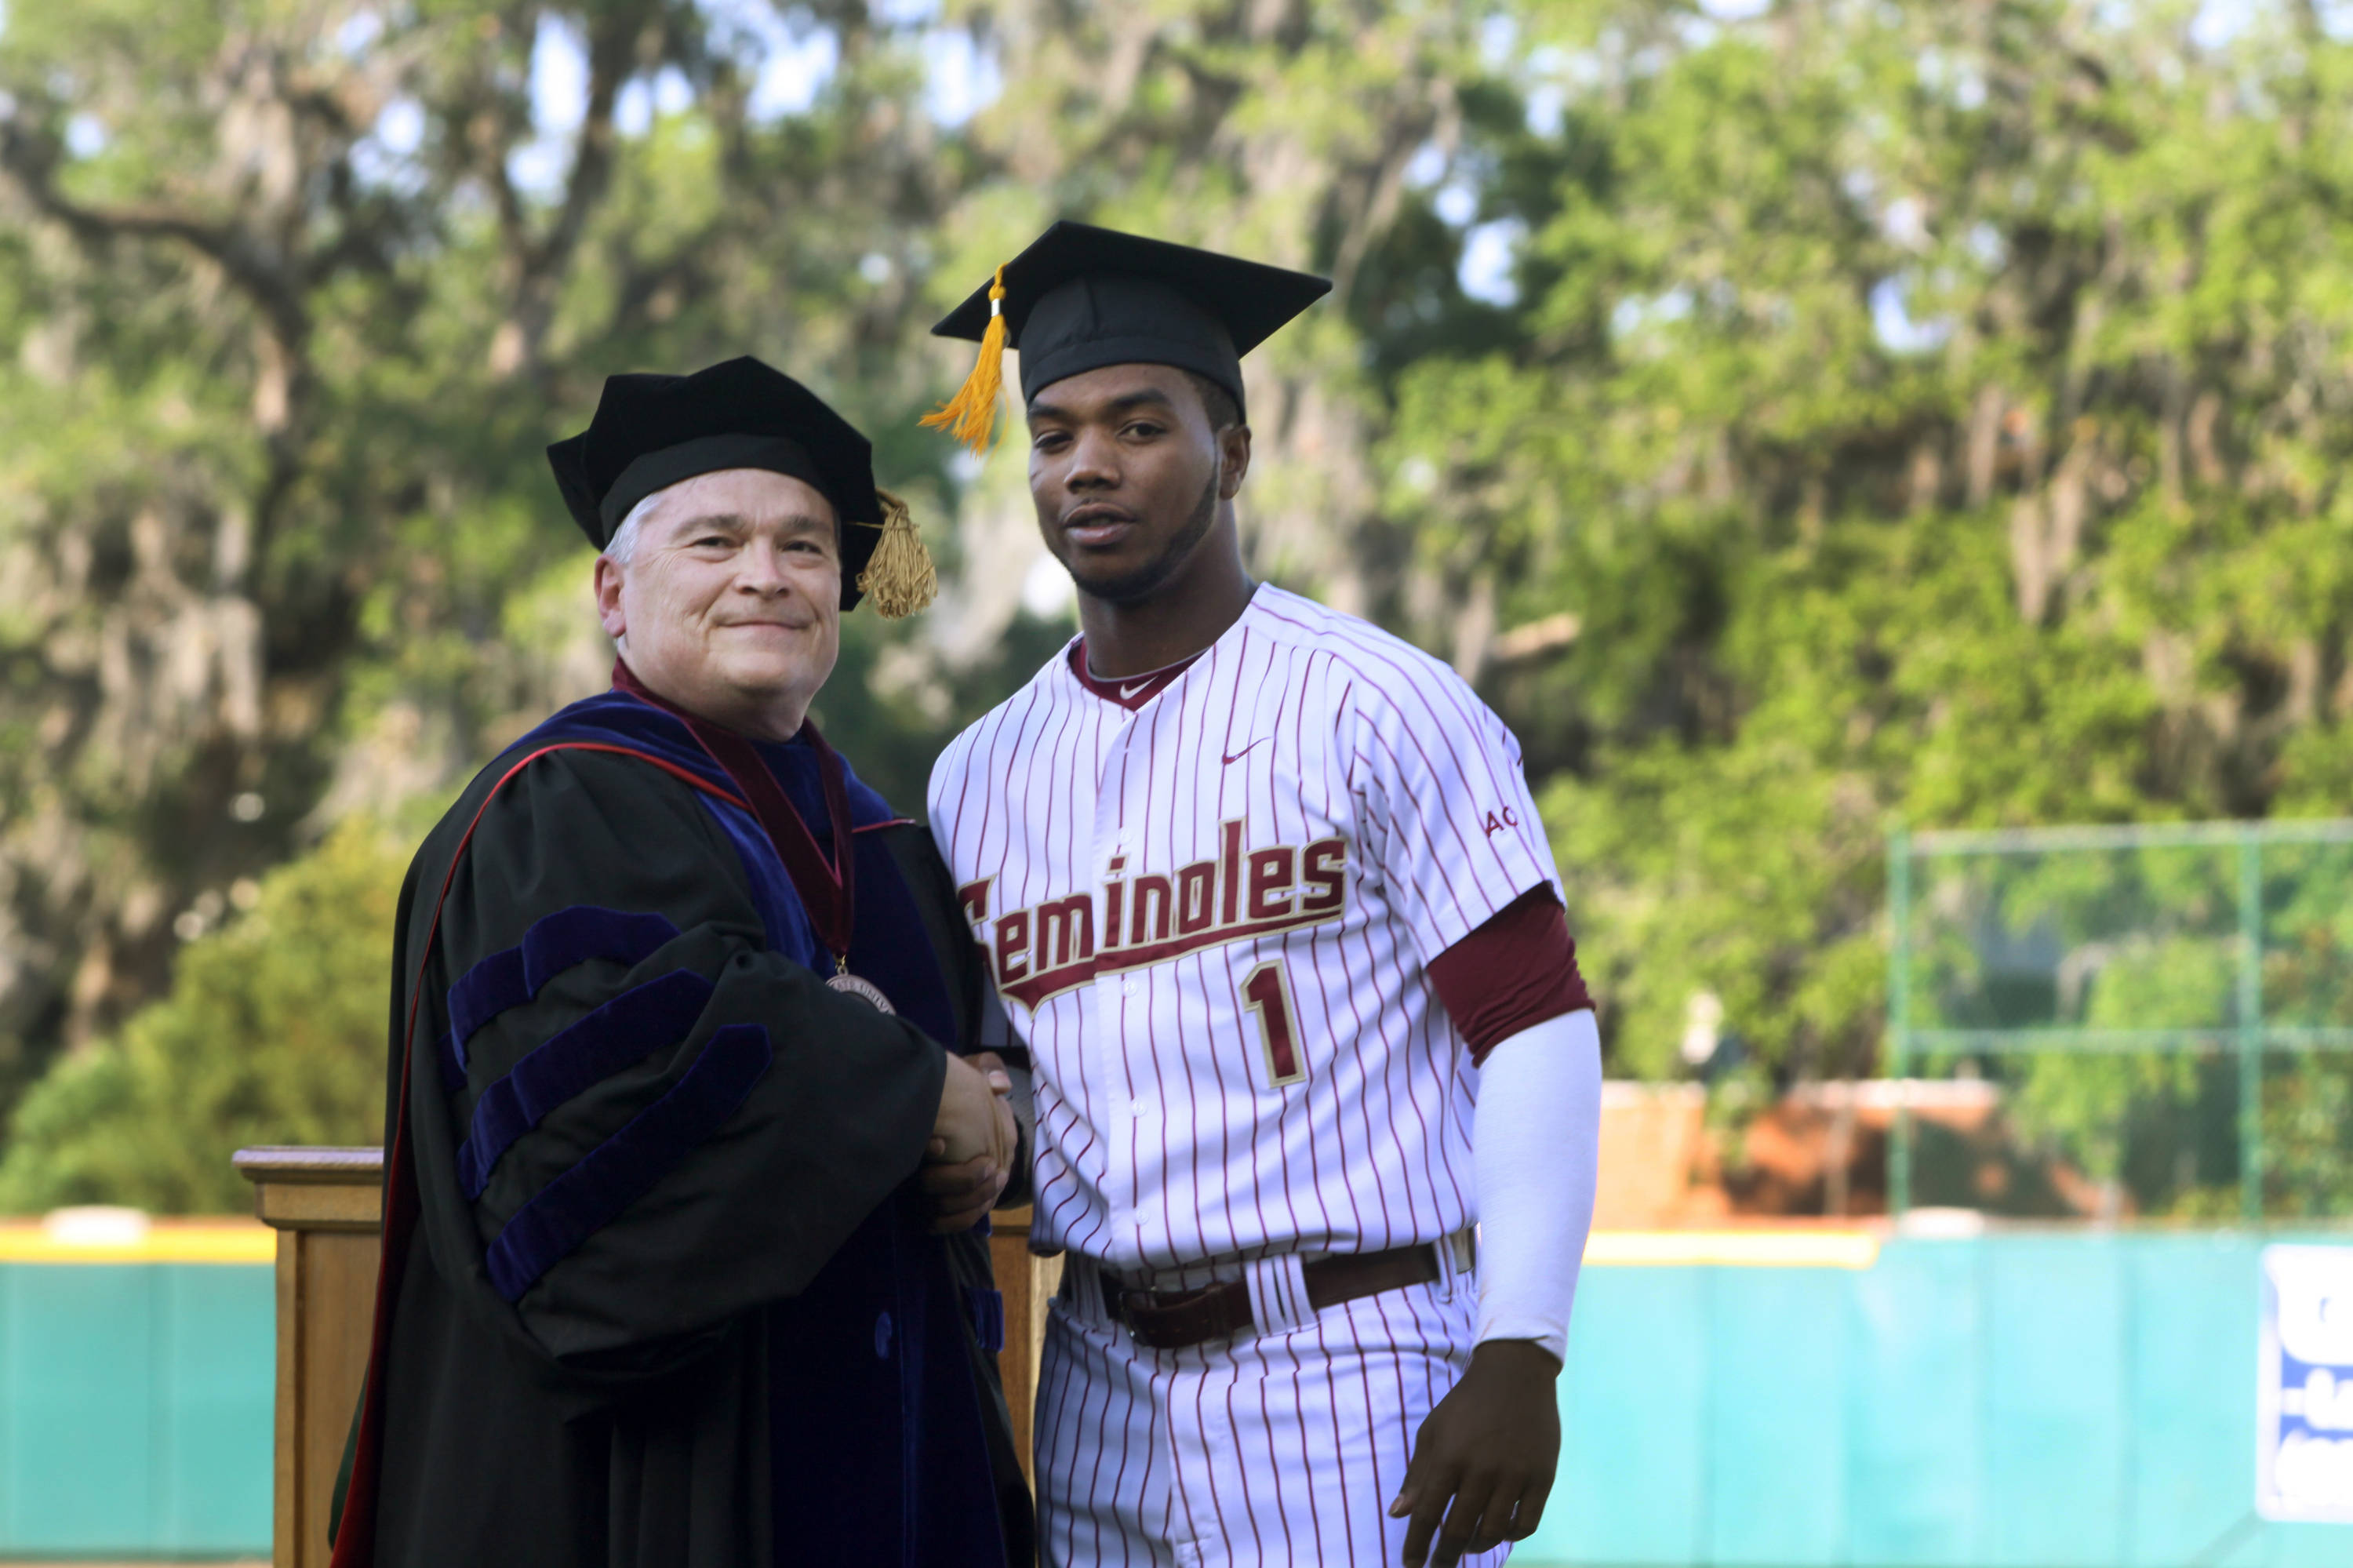 2011 Spring Graduation Ceremony held at Dick Howser Stadium to honor the graduating baseball seniors. Taiwan Easterling (1) with President Barron